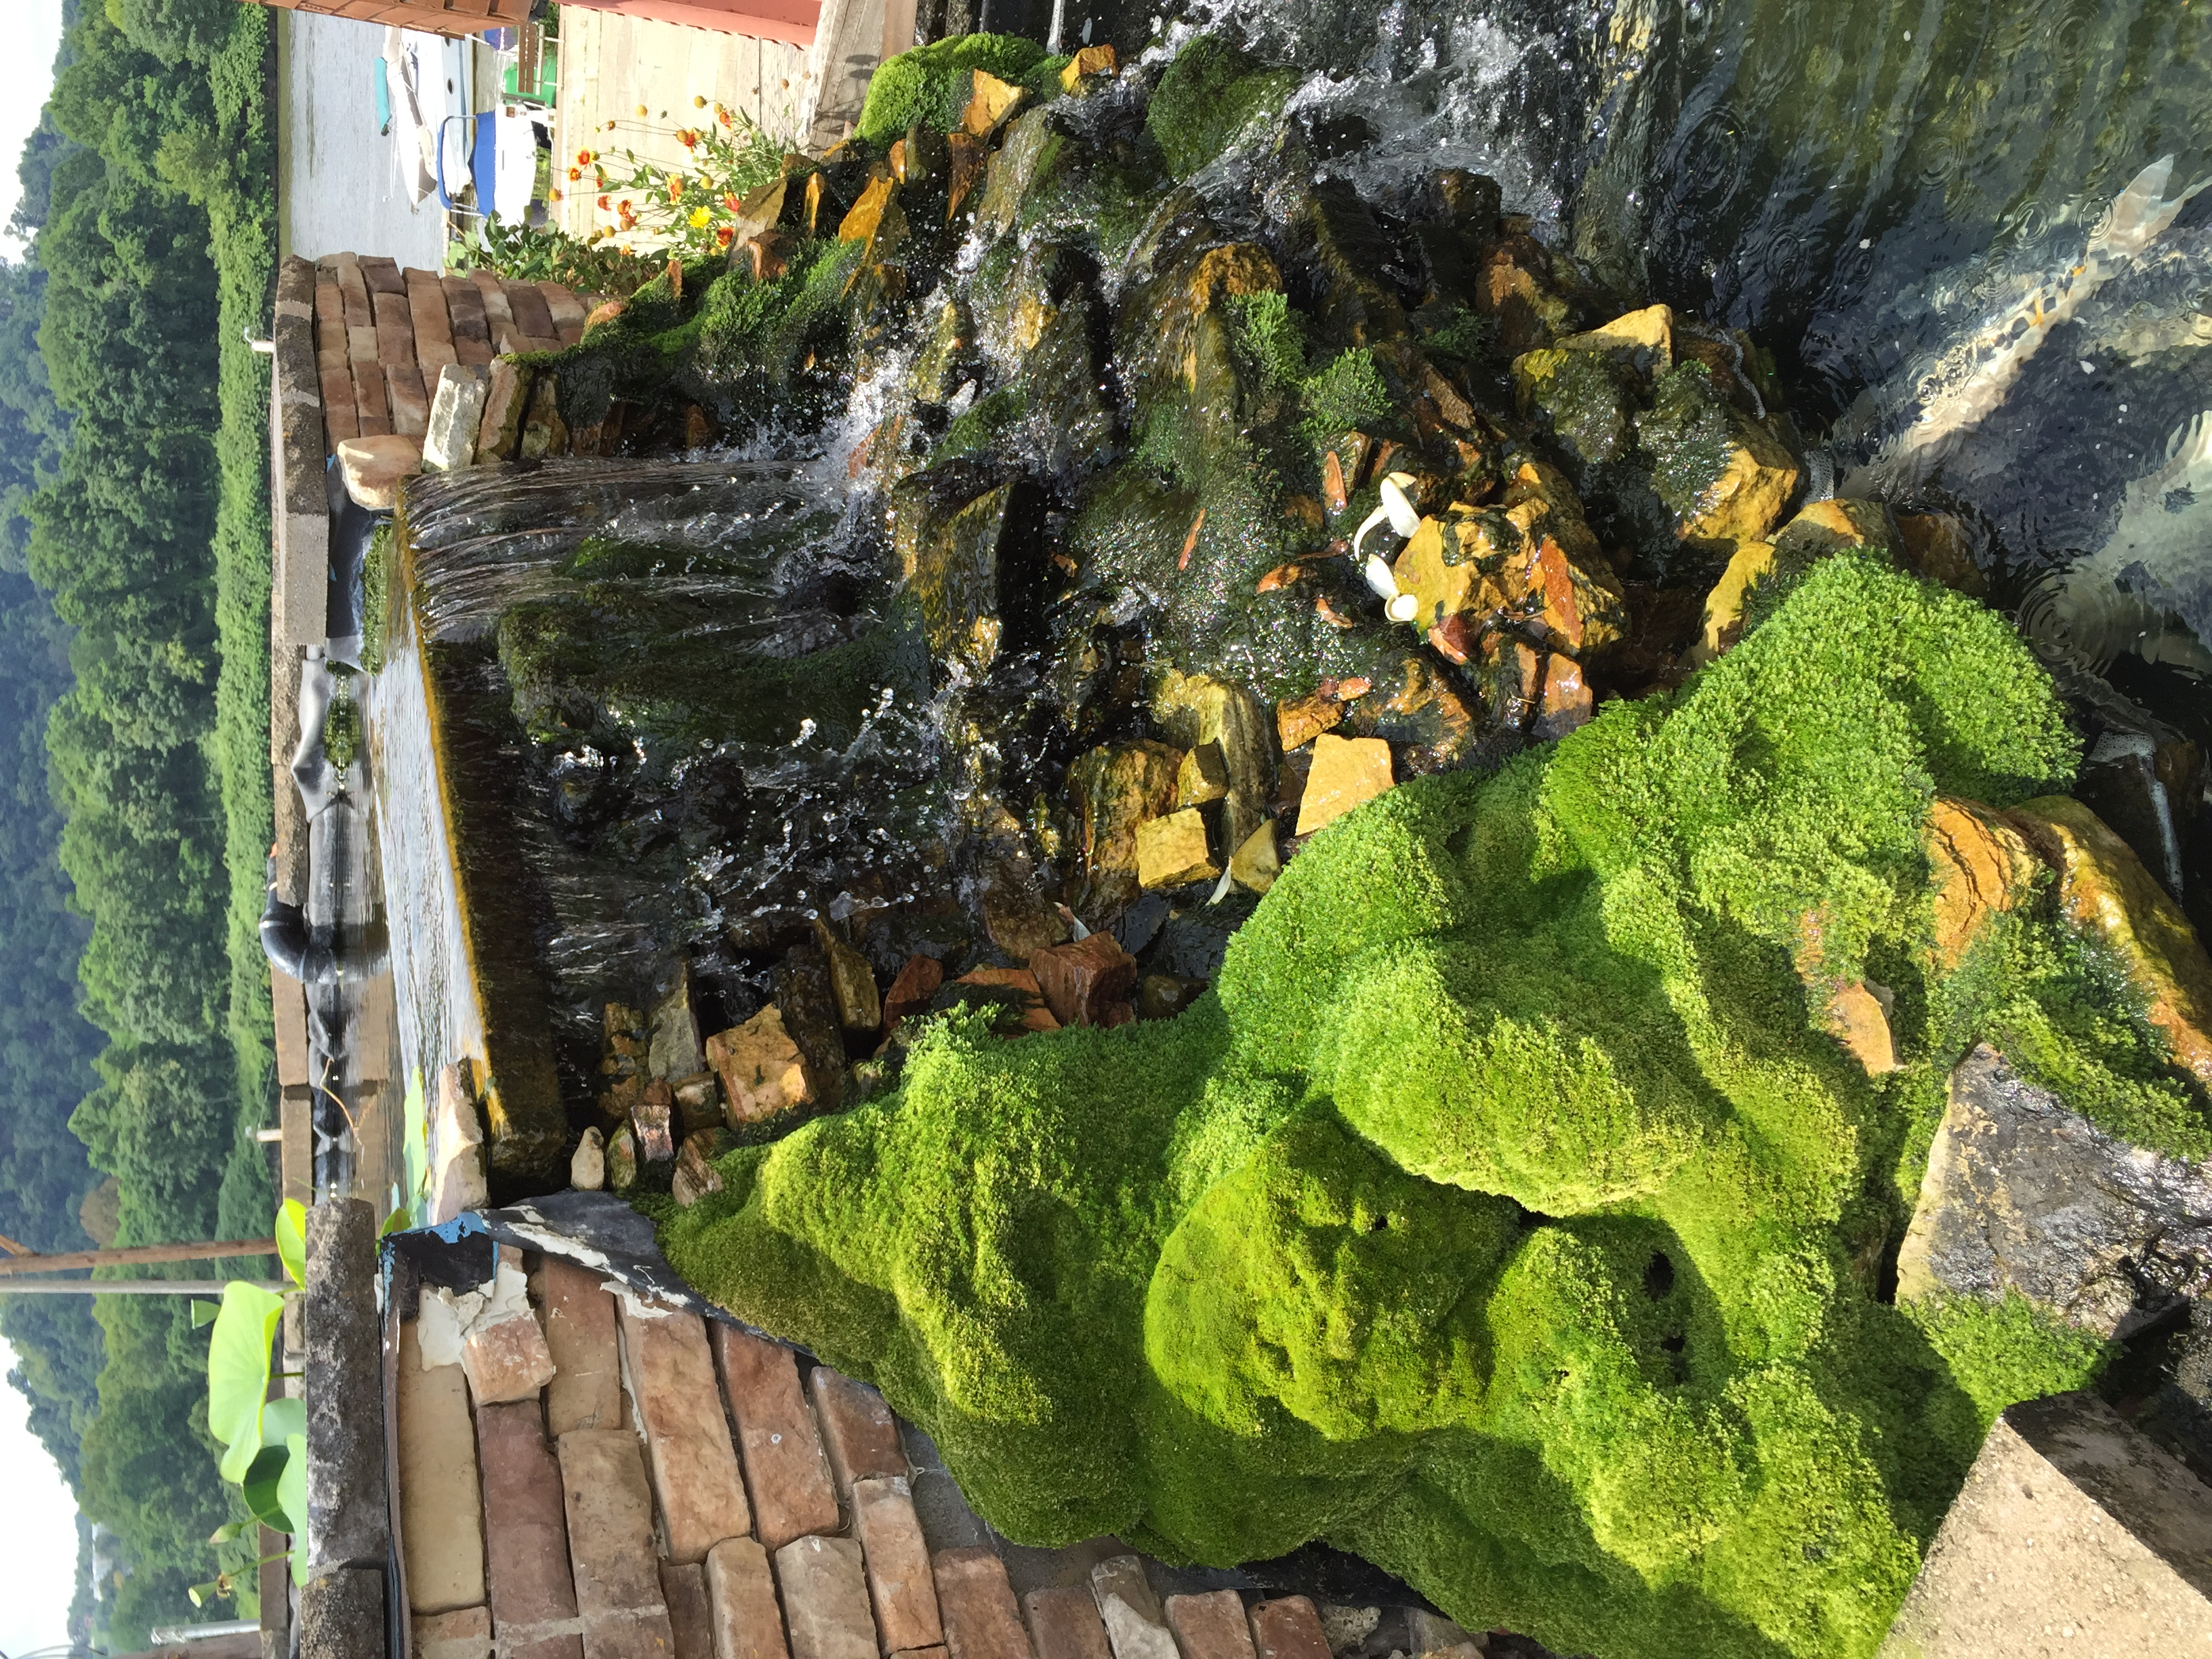 My favorite detail in this garden was a mossy outcropping on the edge of a small waterfall